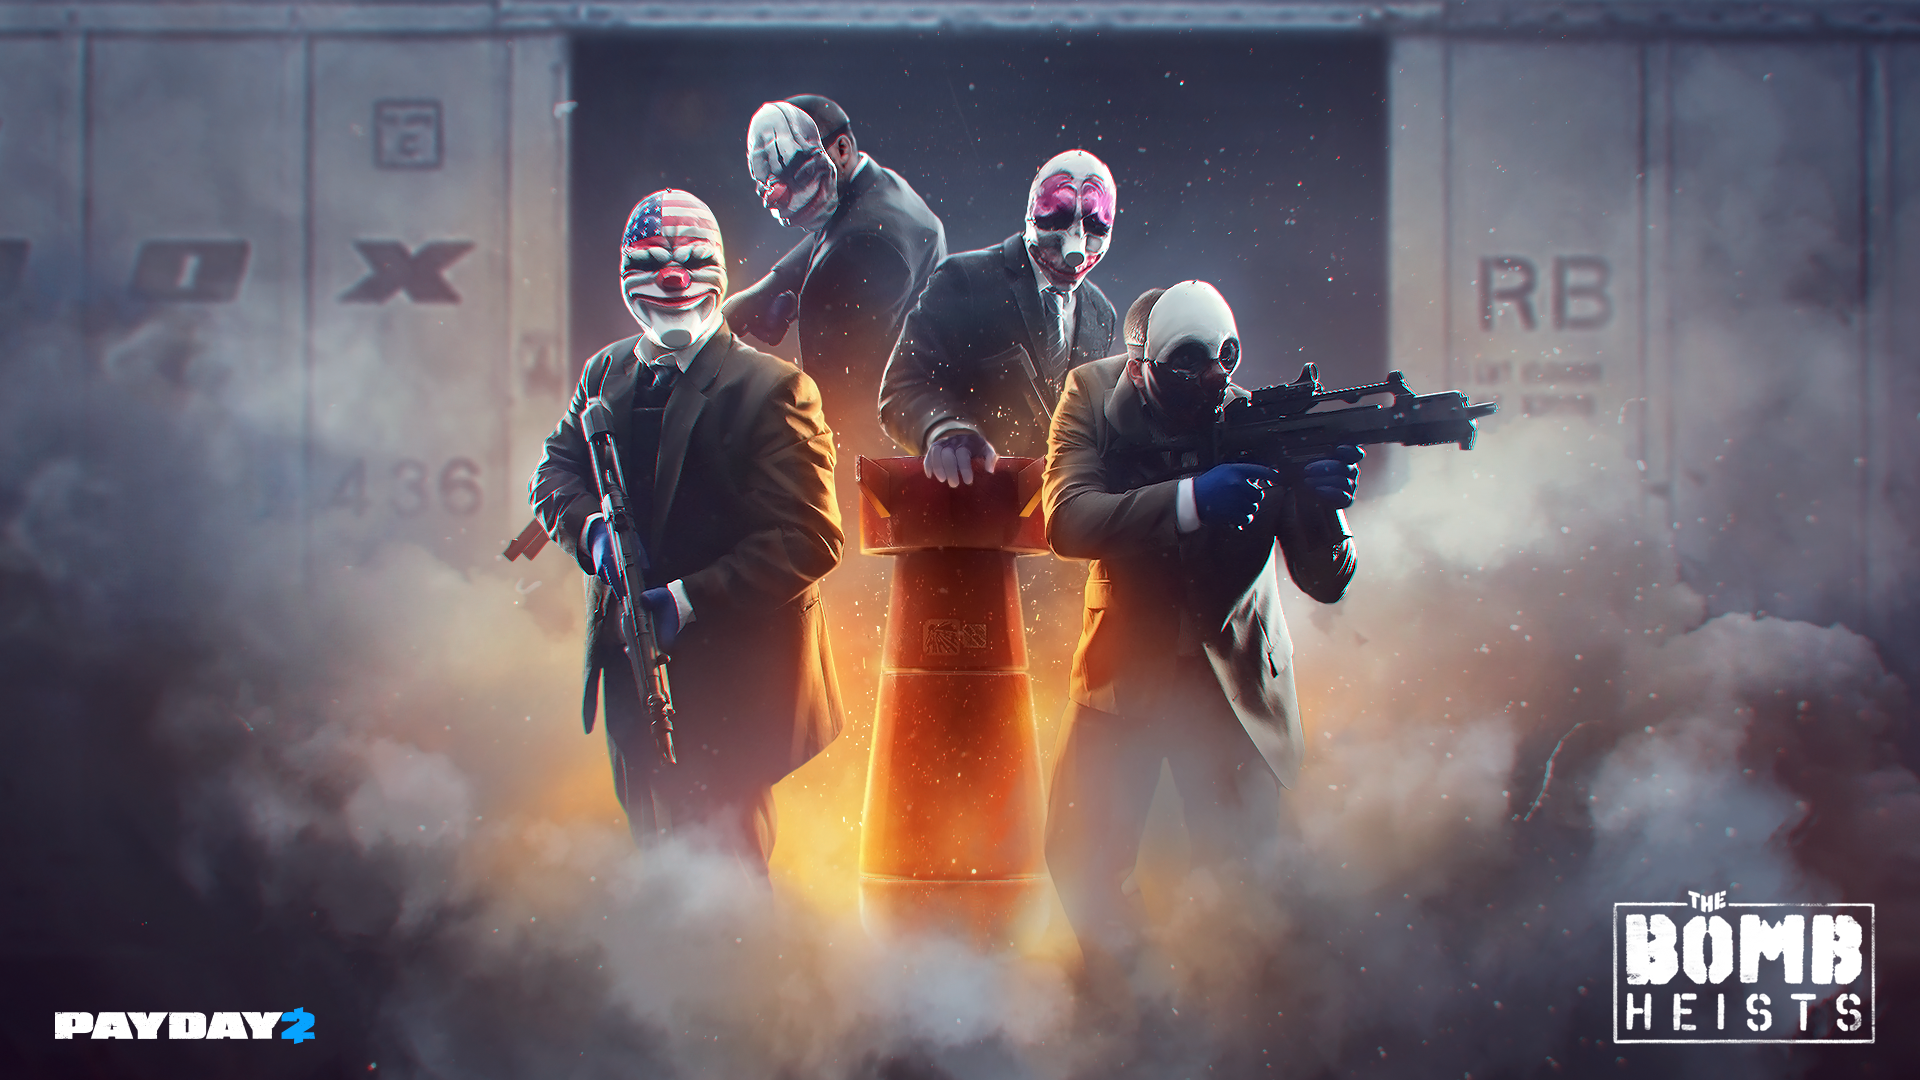 PAYDAY2: The Bomb Wallpaper